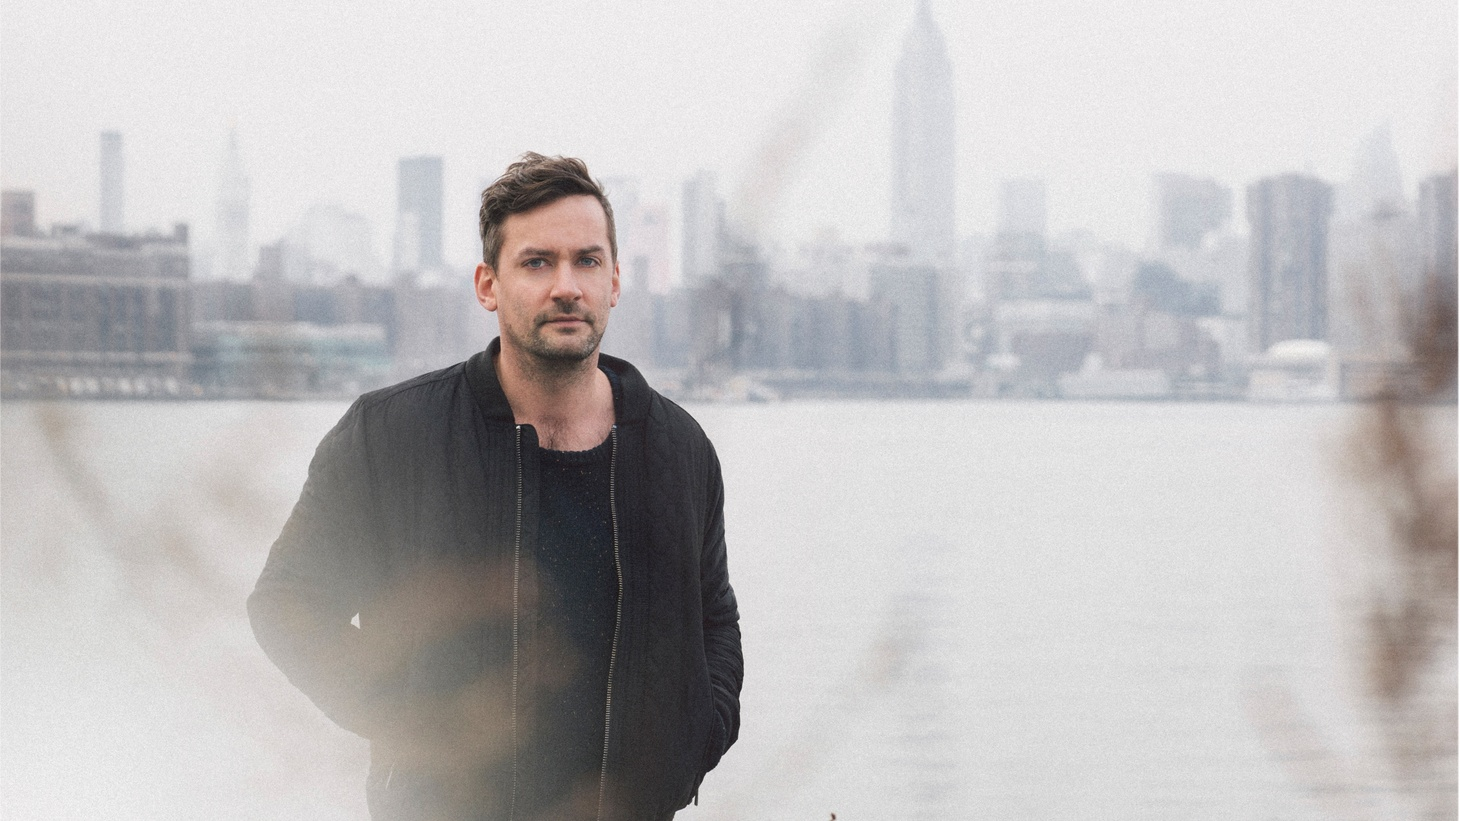 Fresh from celebrating a recent live album and a killer set at this year's KCRW Masquerade Halloween party, UK DJ & producer Simon Green, aka Bonobo, has long been a station favorite.